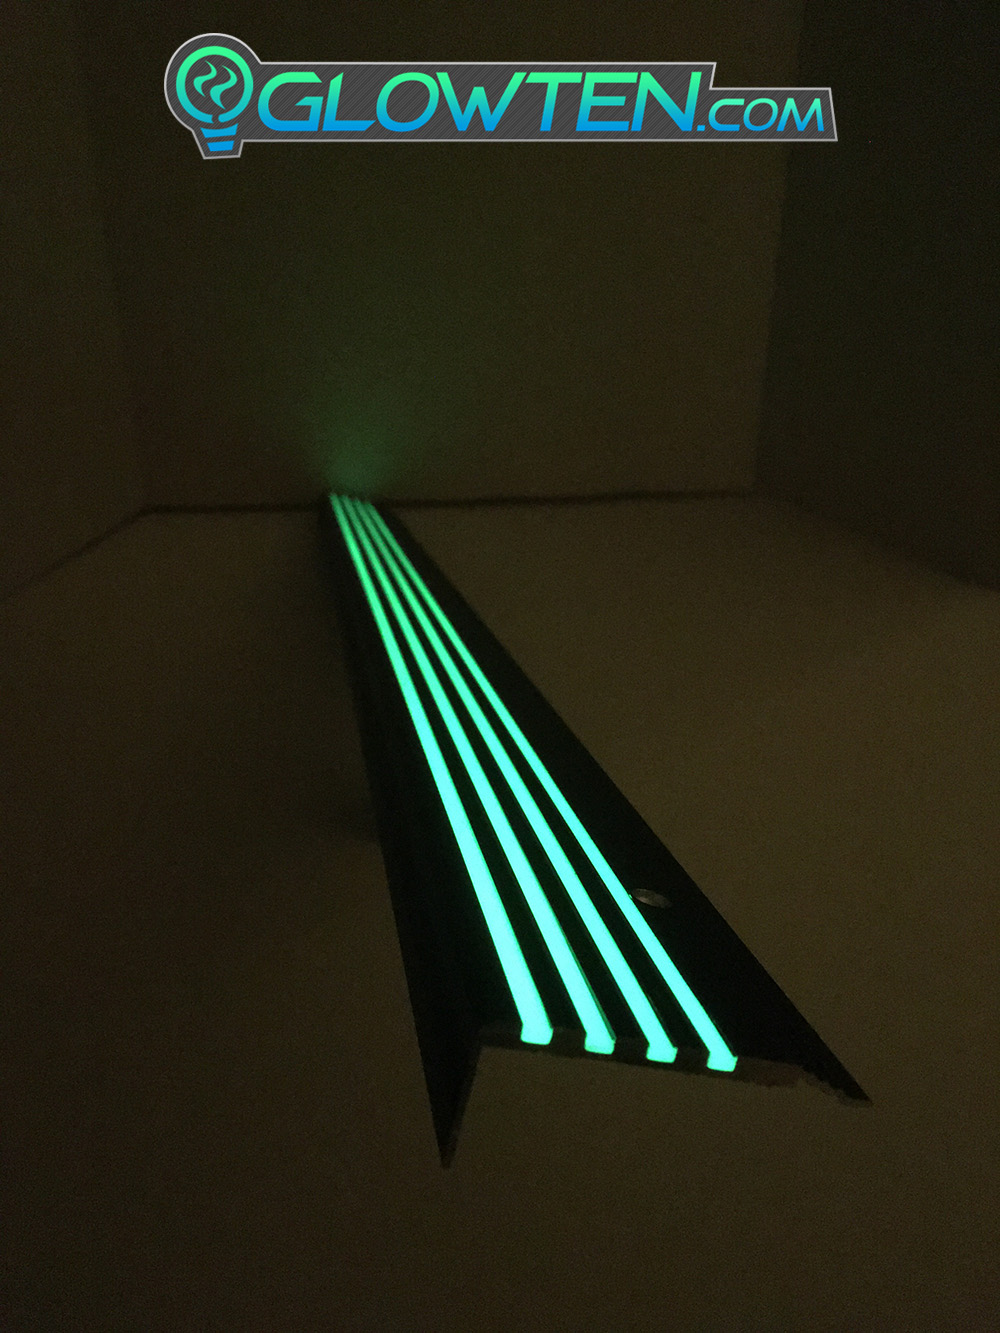 GLOWTEN.com - BLACK METAL ANTI-SLIP STAIRS TREAD 4-BANDS FOURBANDS NOSING GLOW IN THE DARK LUMINOUS SAFETY STRIP All Purpose Out Door All Weather Photoluminescent Stripe NON-SKID SEE BETTER AT NIGHT PREVENT FALLING GRIP STRENGTH FOR MINIMUM 31.5